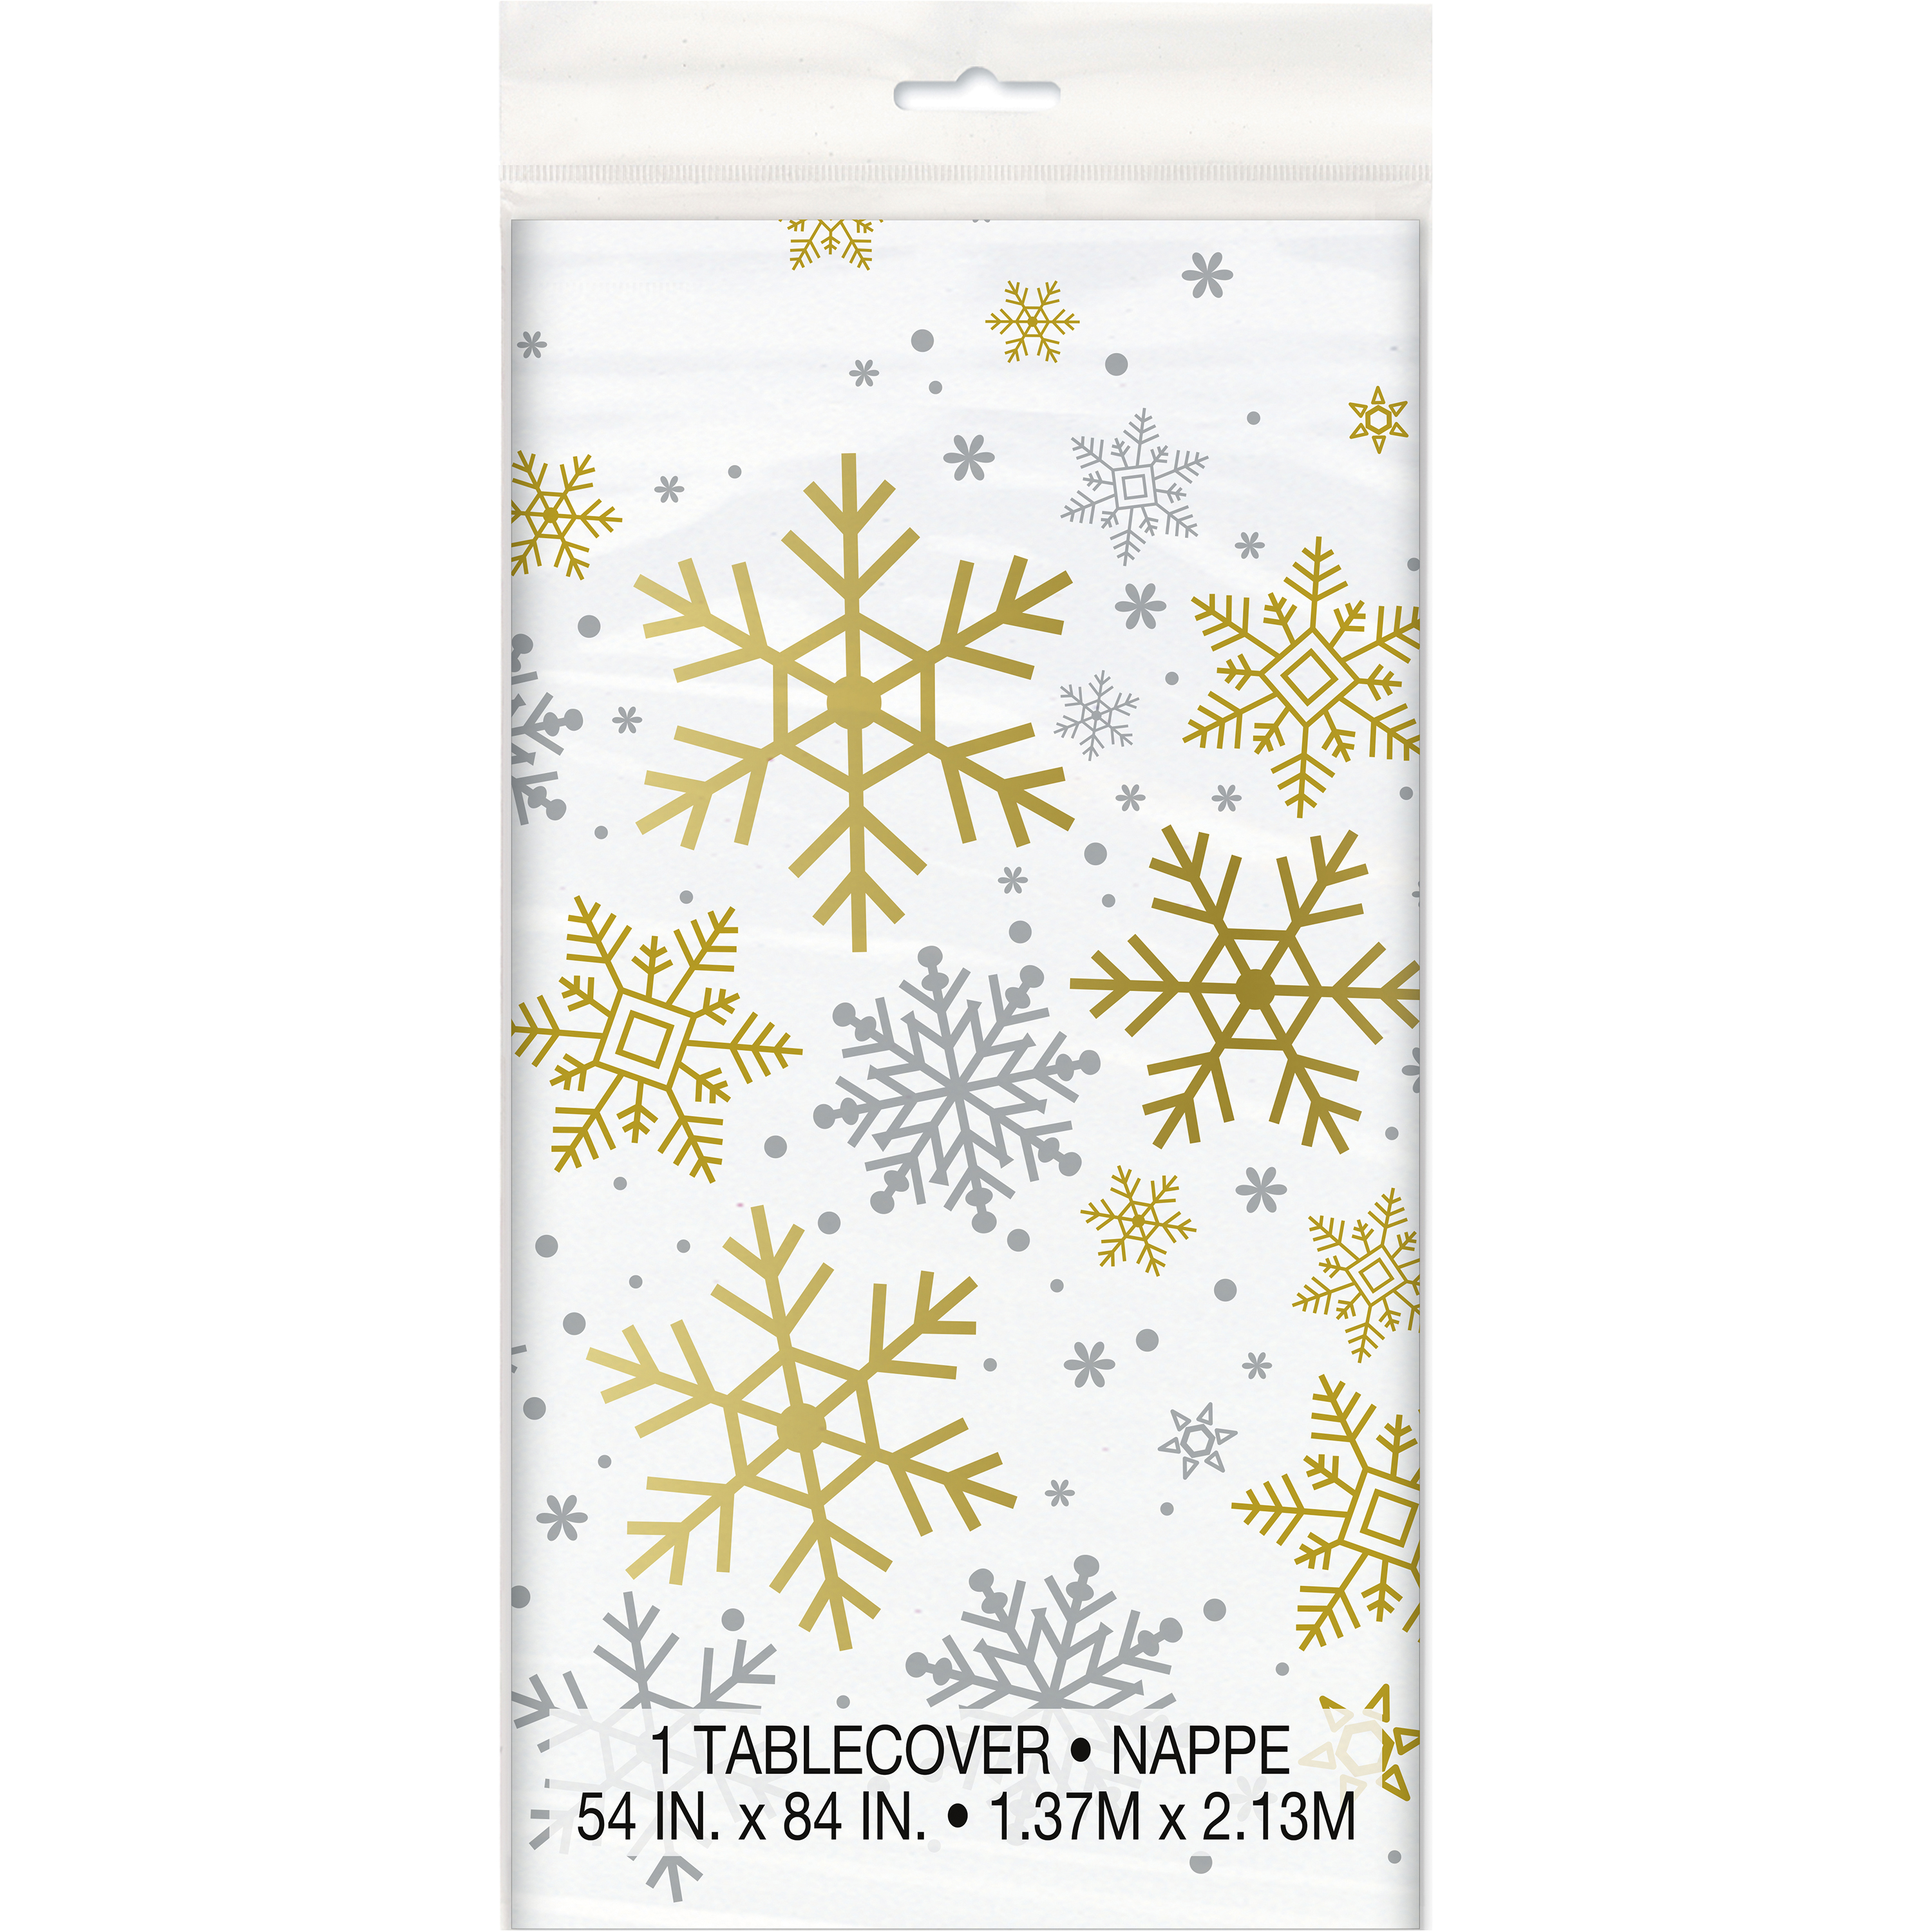 Silver & Gold Snowflakes Holiday Plastic Tablecloth, 84 x 54 in, 1ct